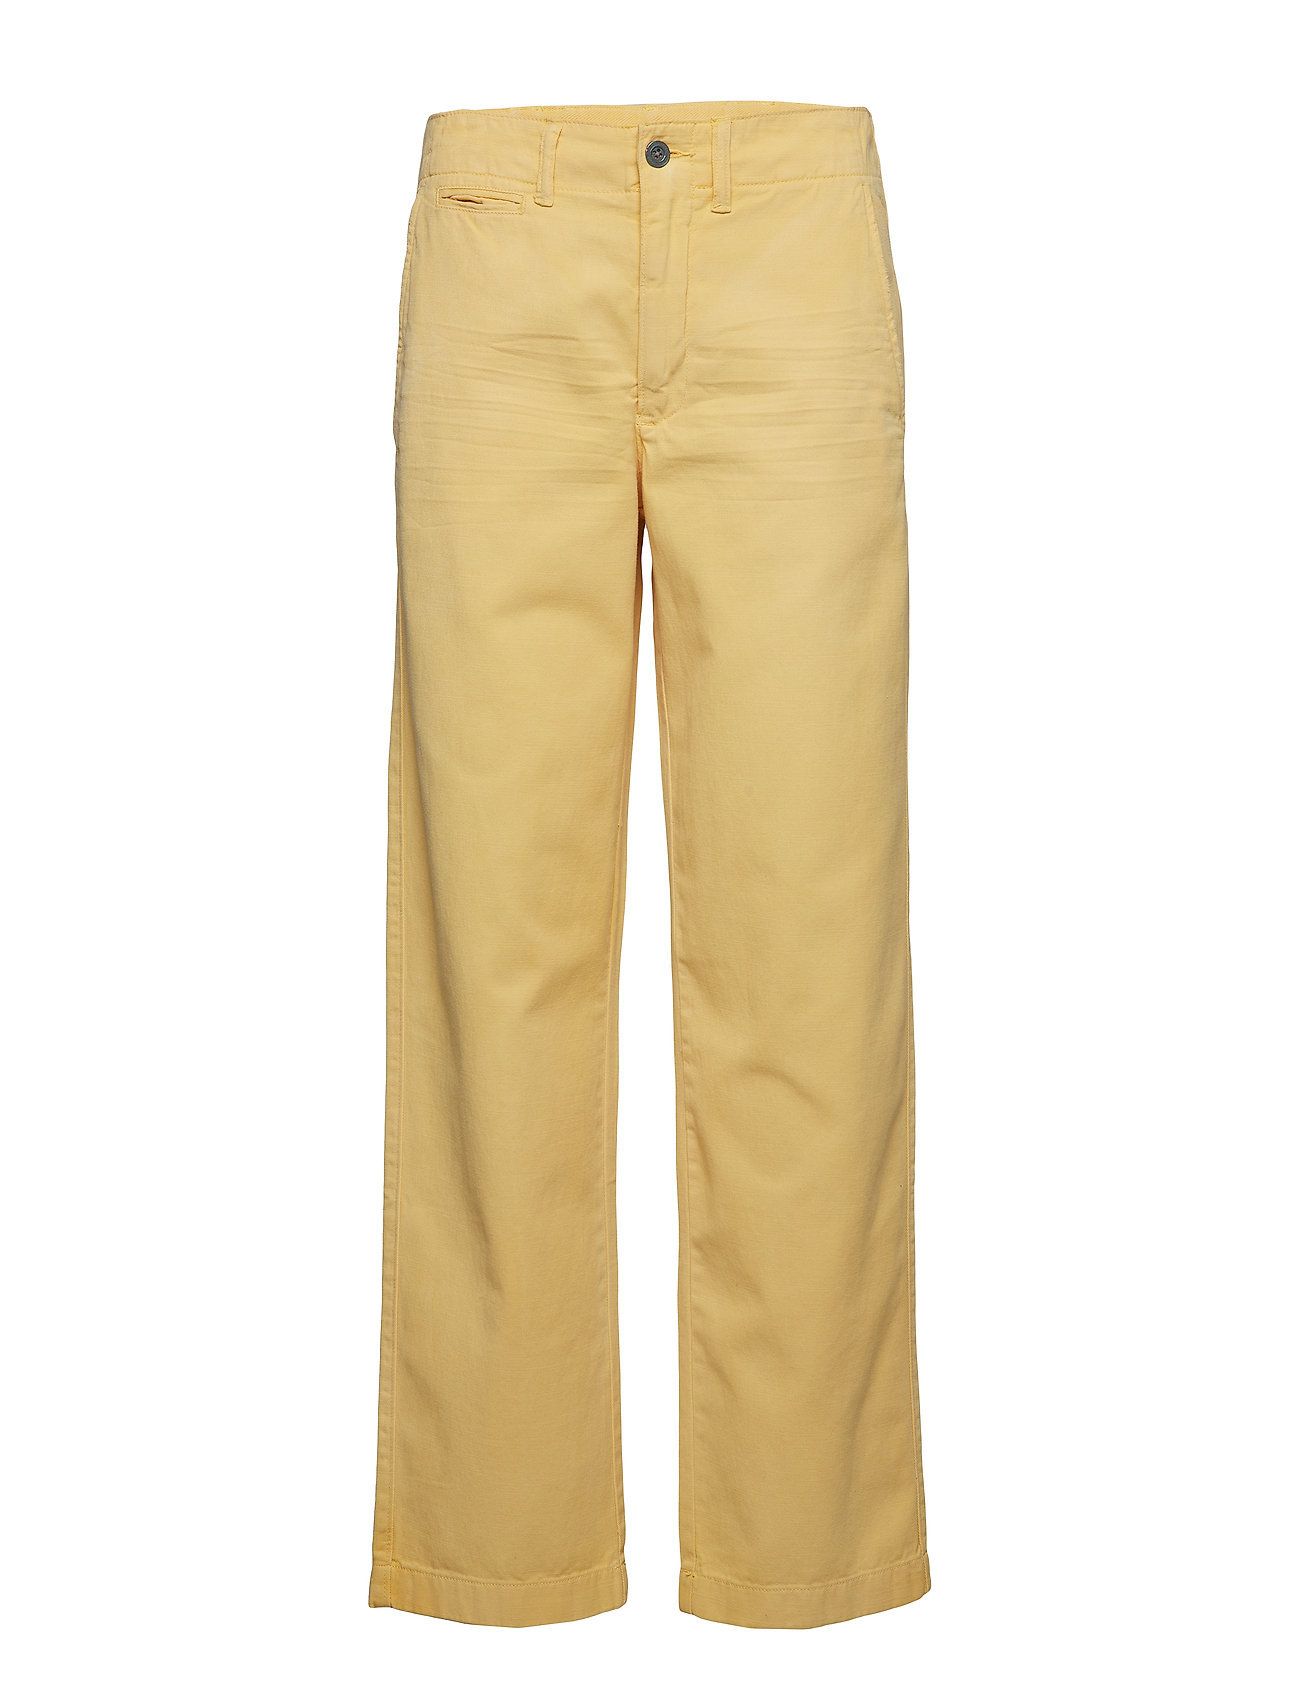 Polo Ralph Lauren Relaxed Chino Pant